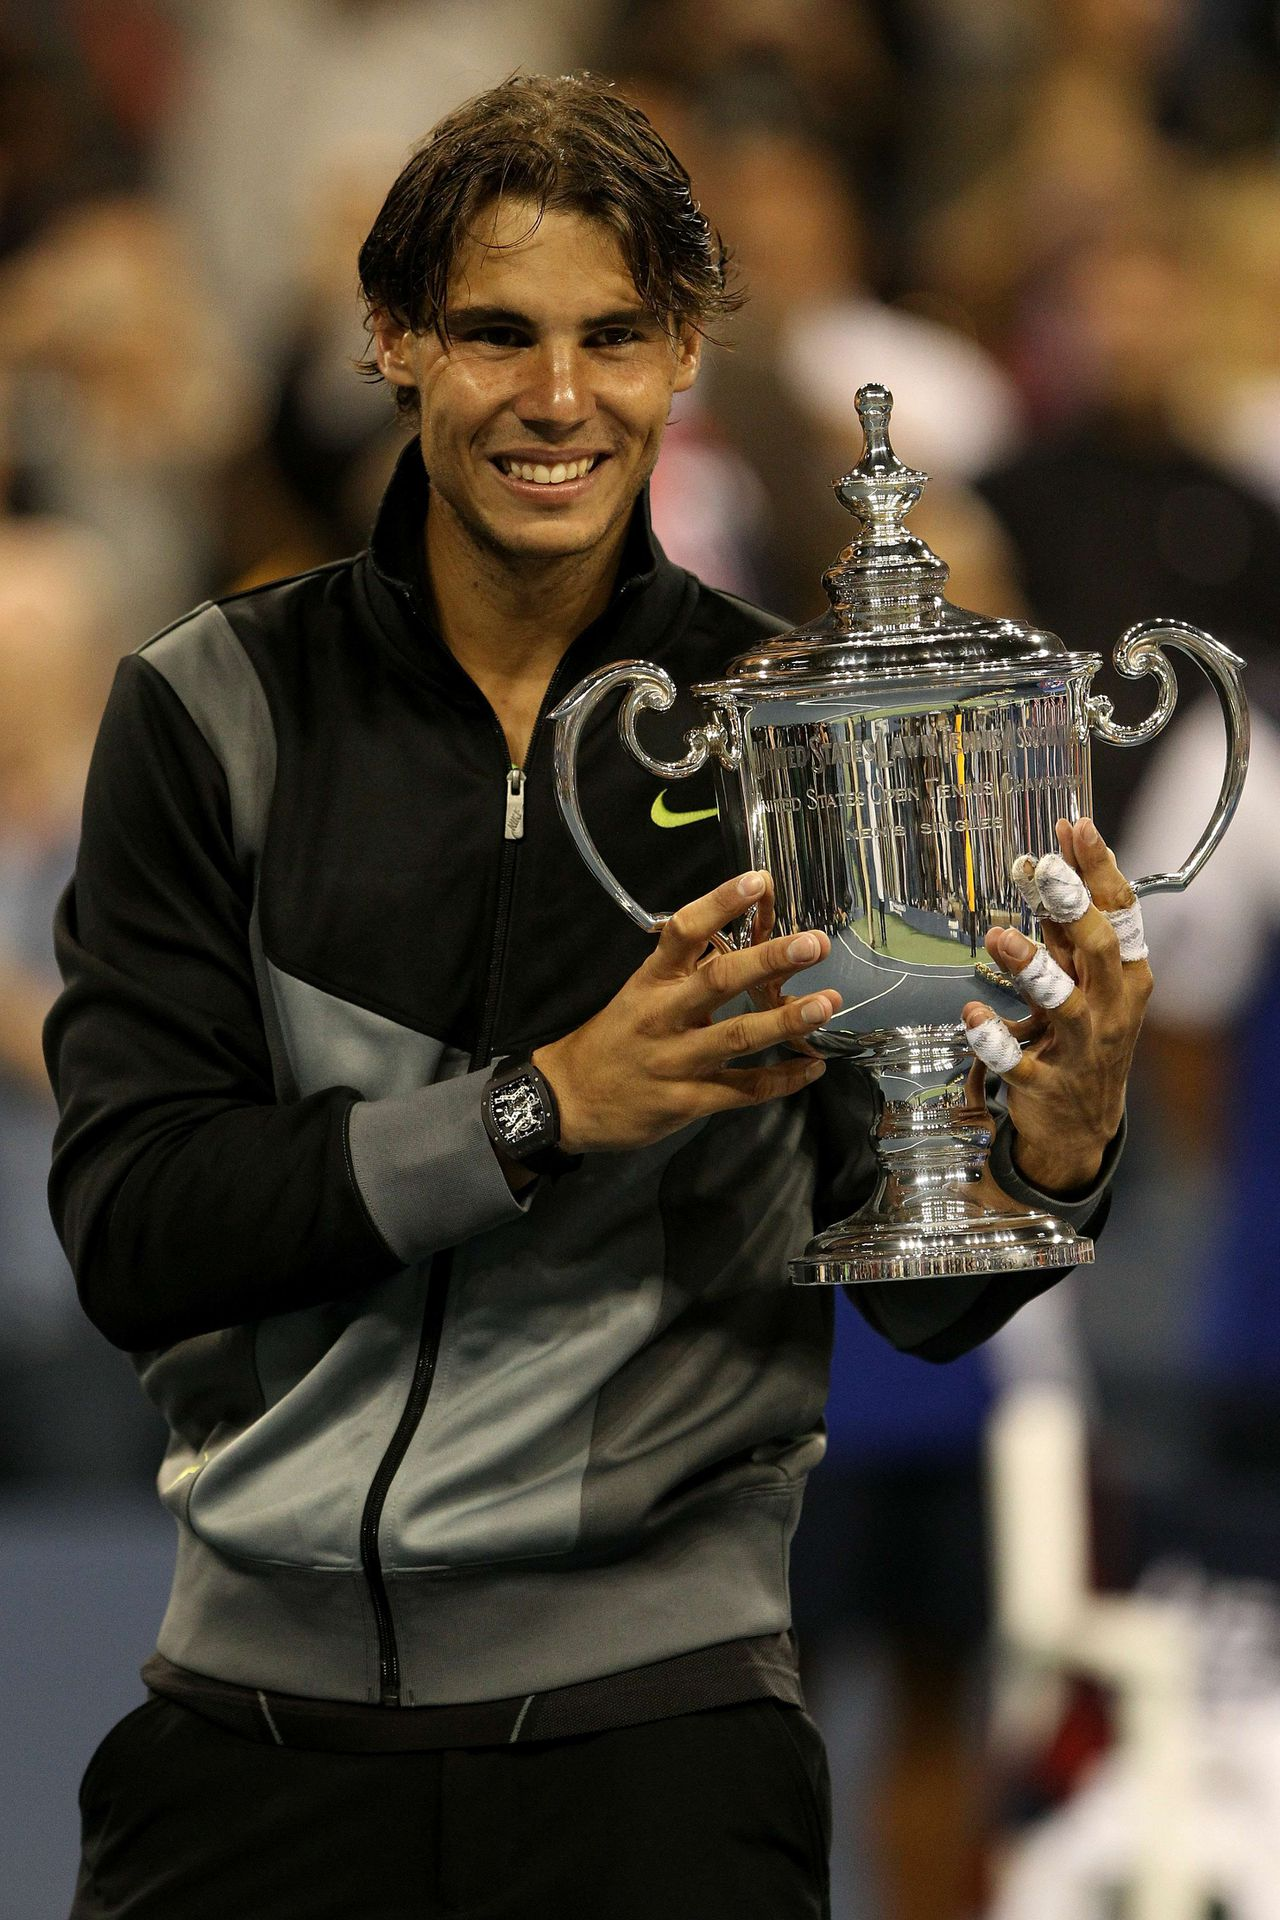 NEW YORK - SEPTEMBER 13: Rafael Nadal of Spain celebrates with the championship trophy after defeating Novak Djokovic of Serbia to win the men's singles final on day fifteen of the 2010 U.S. Open at the USTA Billie Jean King National Tennis Center on September 13, 2010 in the Flushing neighborhood of the Queens borough of New York City. Matthew Stockman/Getty Images/AFP == FOR NEWSPAPERS, INTERNET, TELCOS & TELEVISION USE ONLY ==